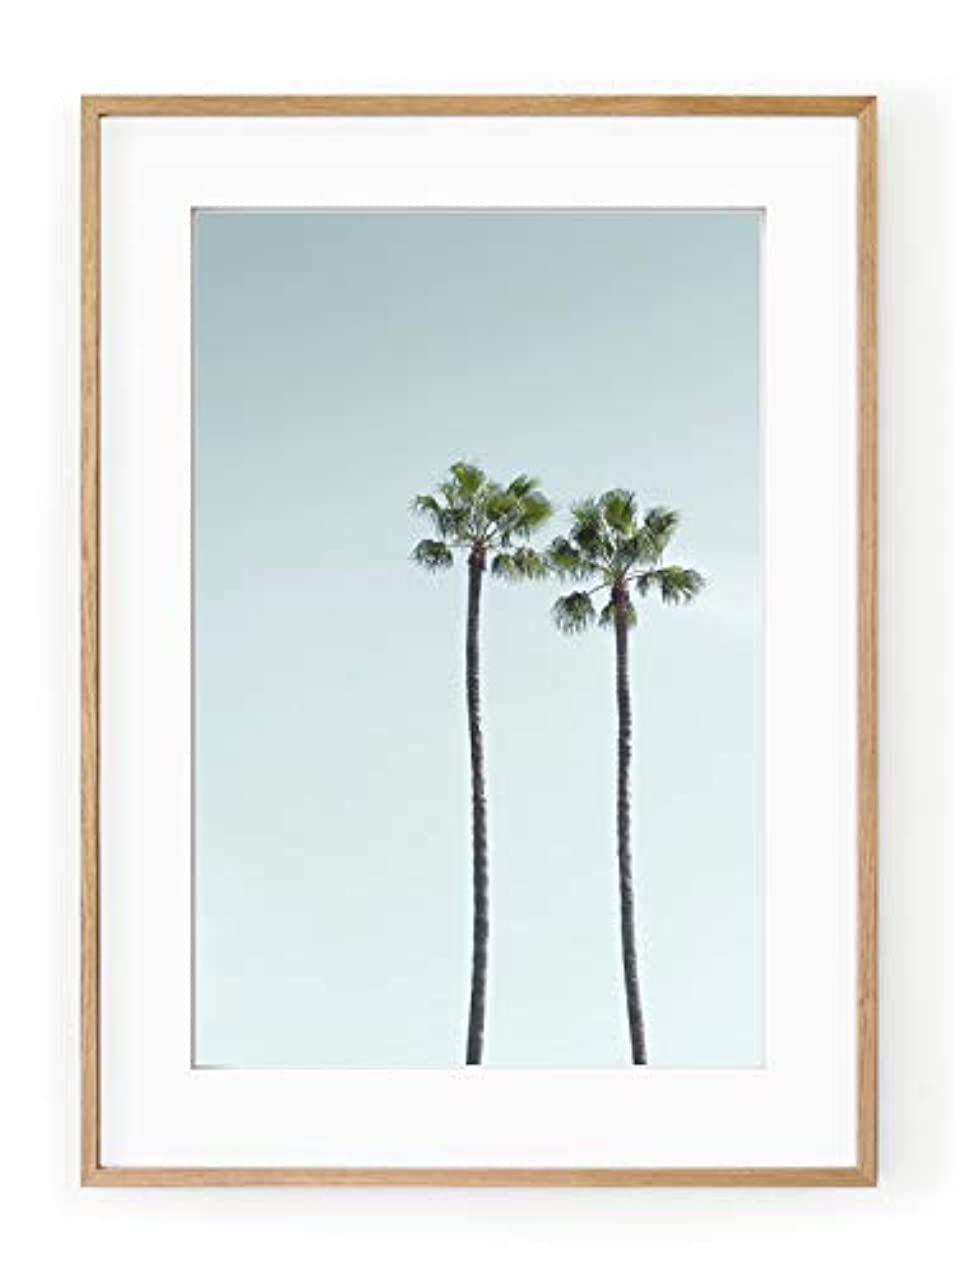 Los Angeles Palm Trees, Black Satin Aluminium Frame, with Mount, Multicolored, 30x40